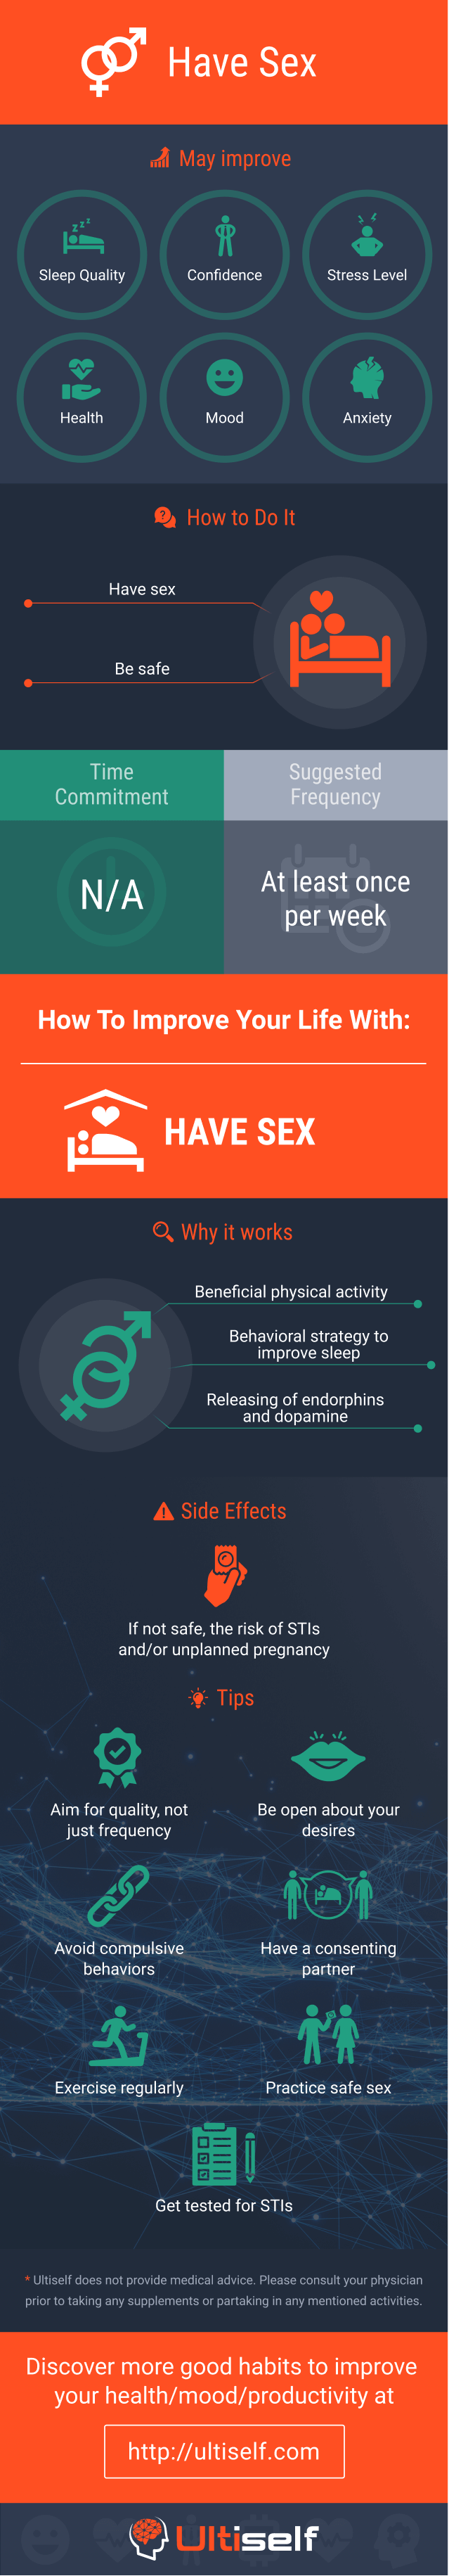 Have Sex infographic